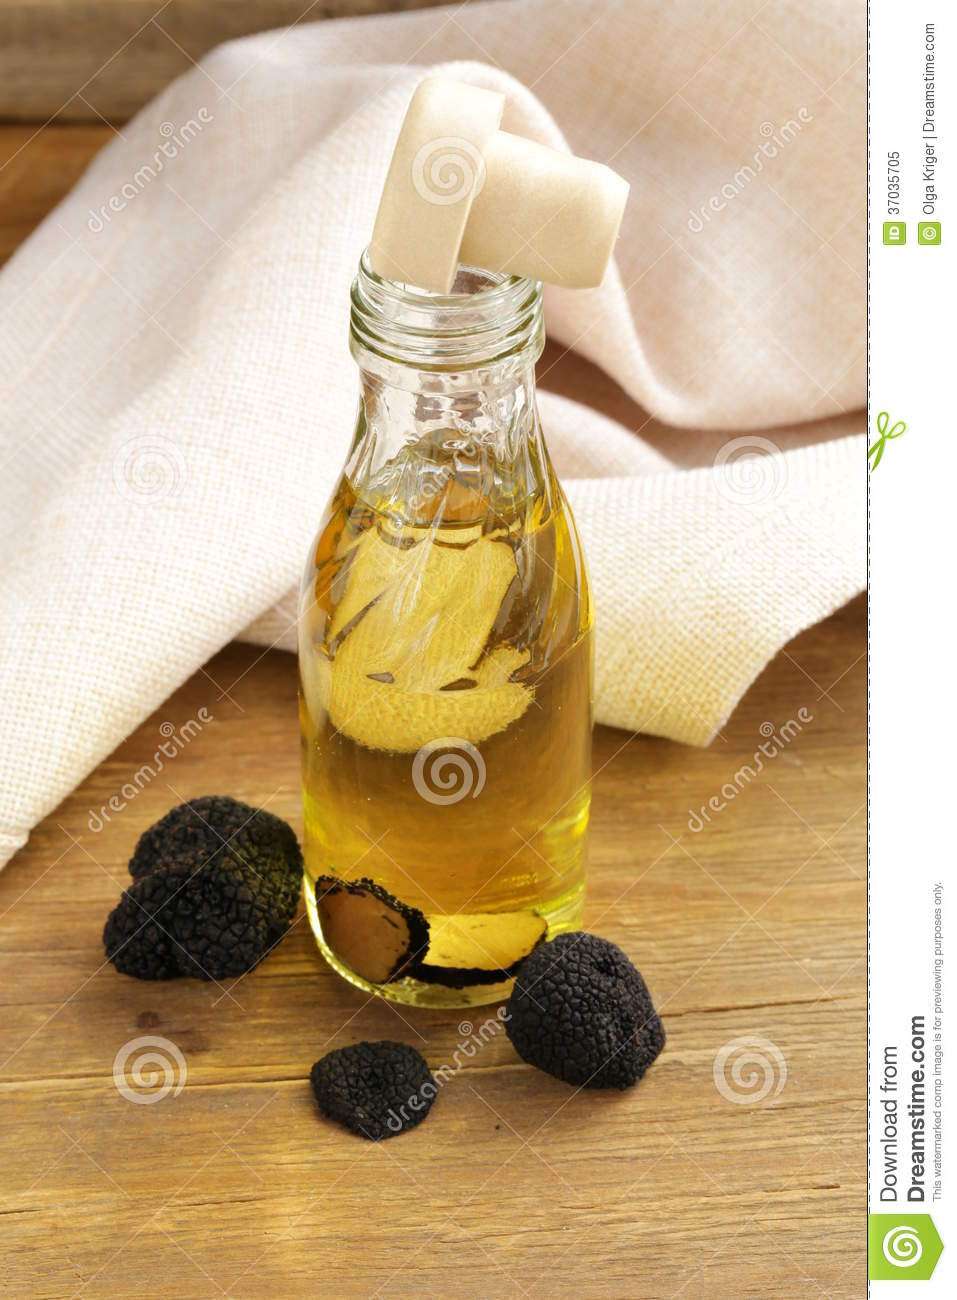 Download Olive Oil Flavored With Black Truffle Stock Image - Image of delicious, ingredient: 37035705